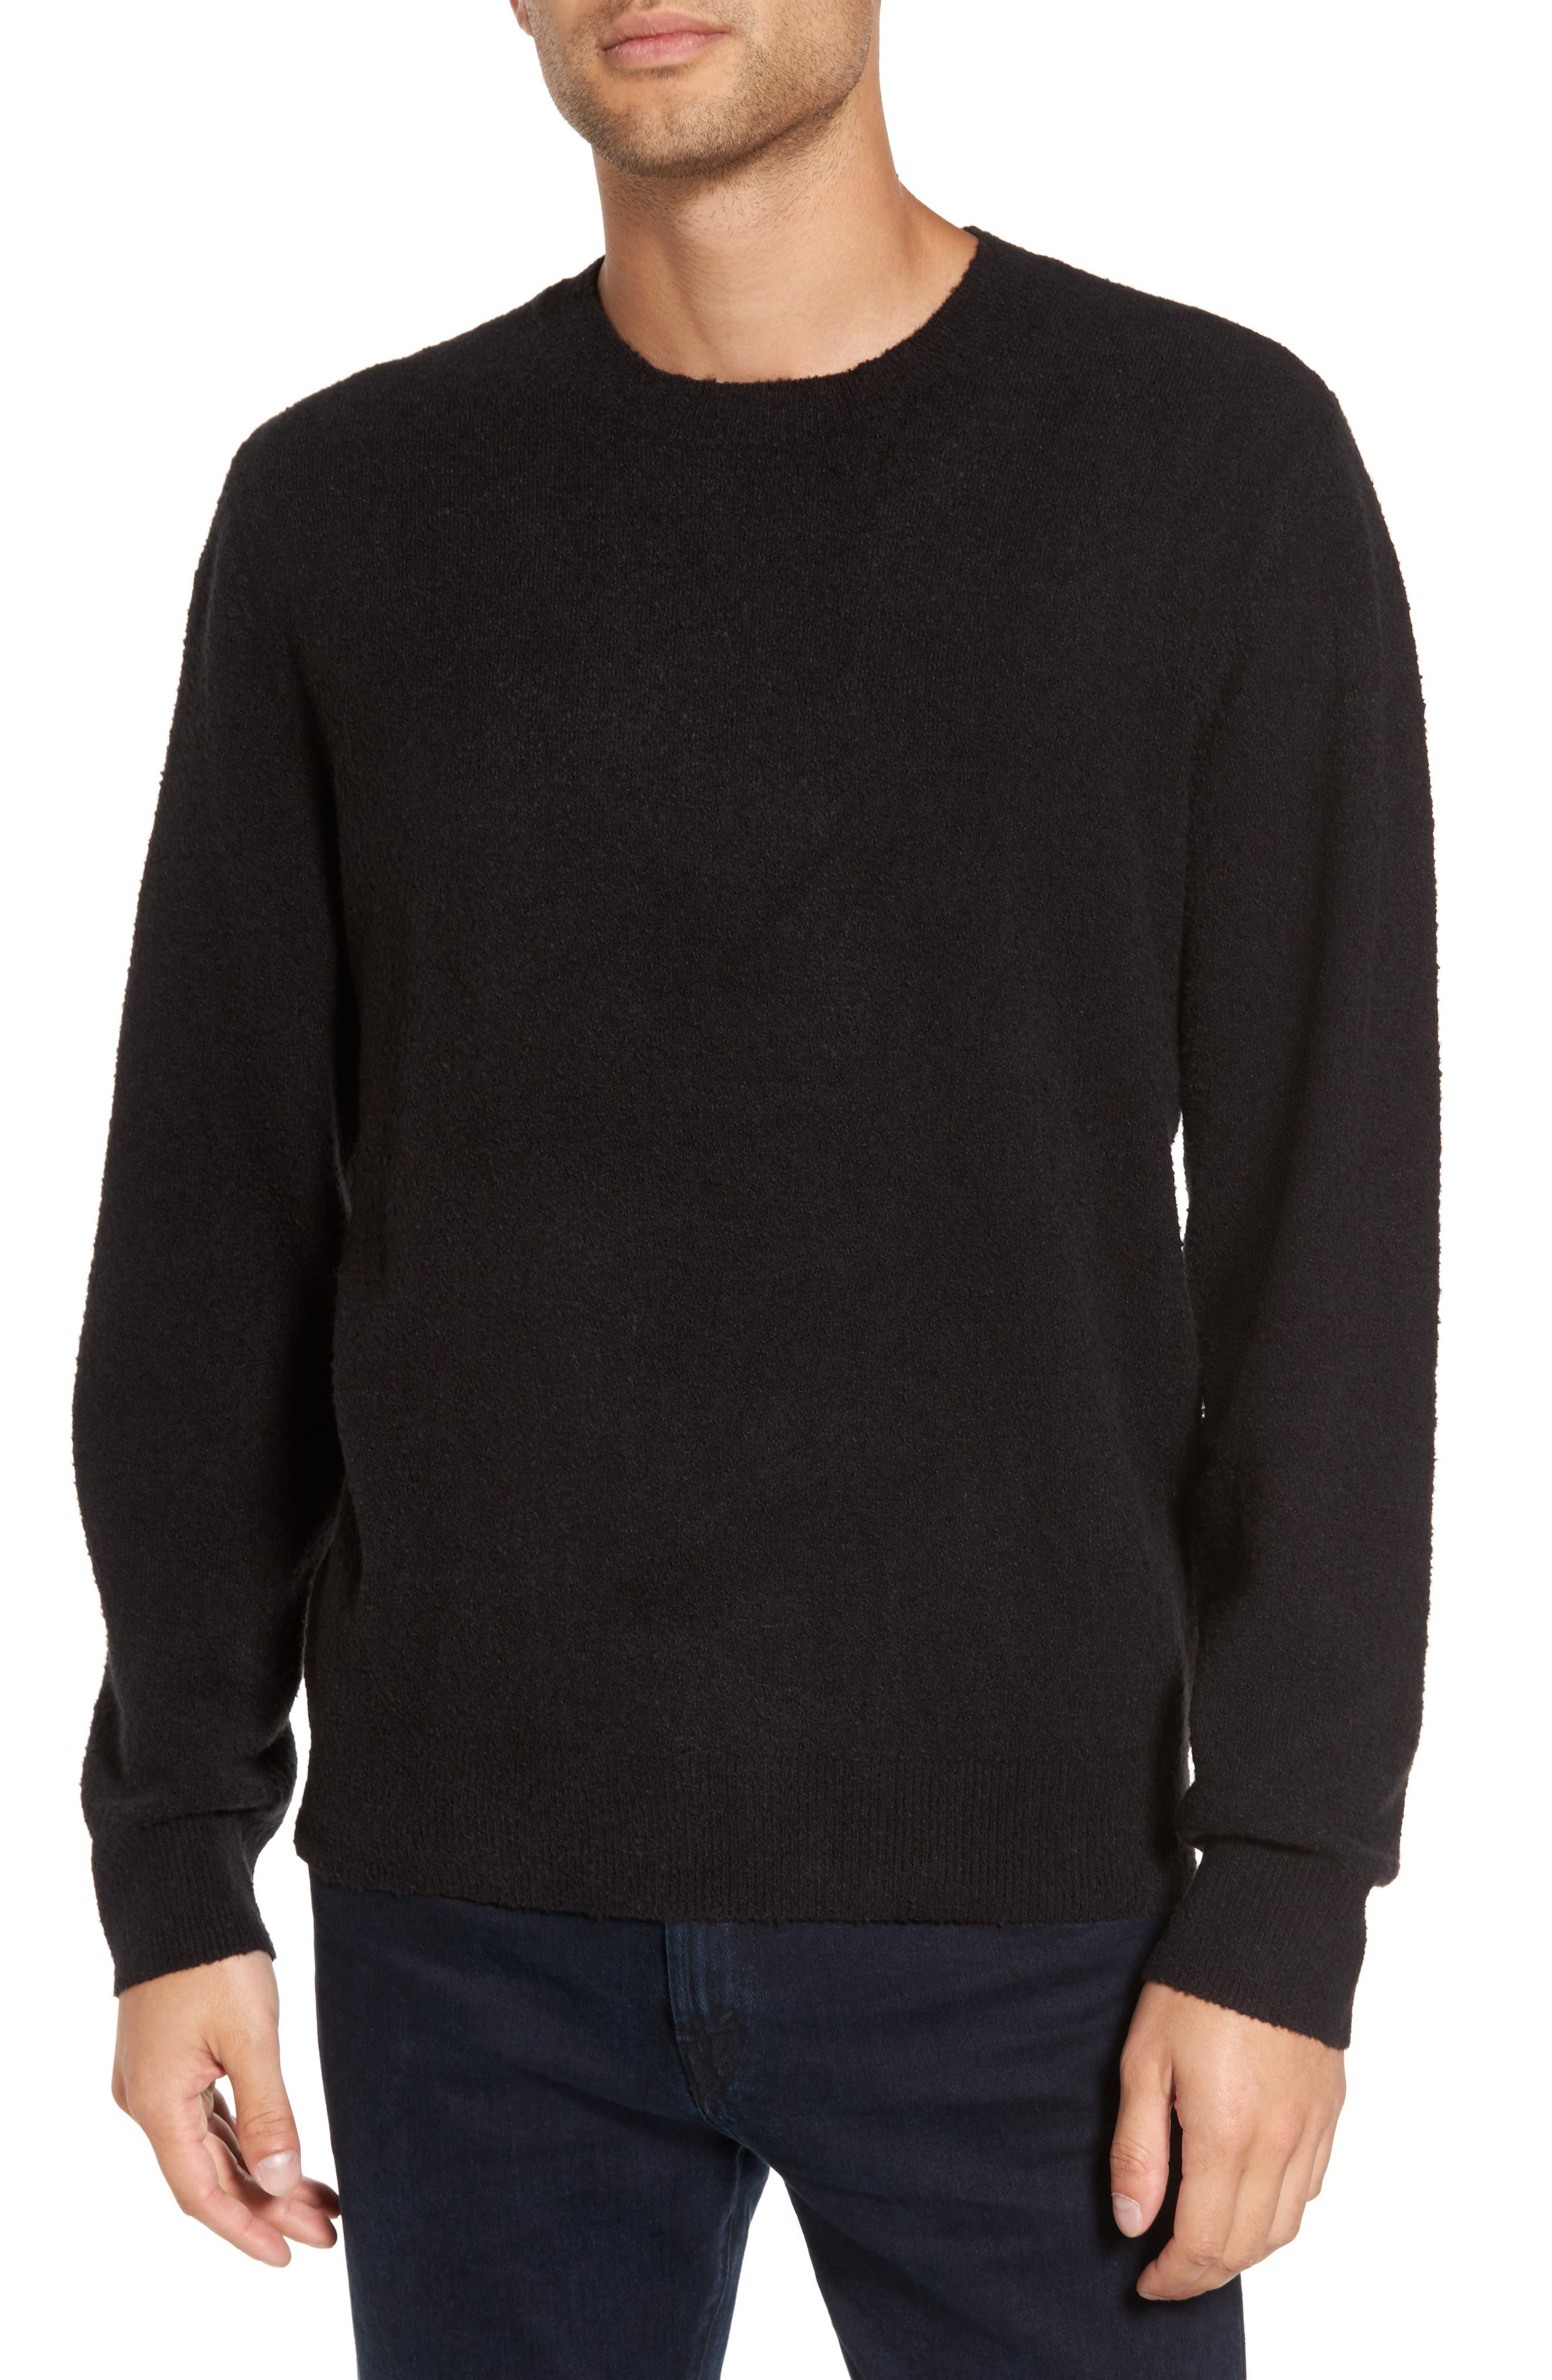 Nathaniel Classic Fit Sweater,                         Main,                         color, Jet Black